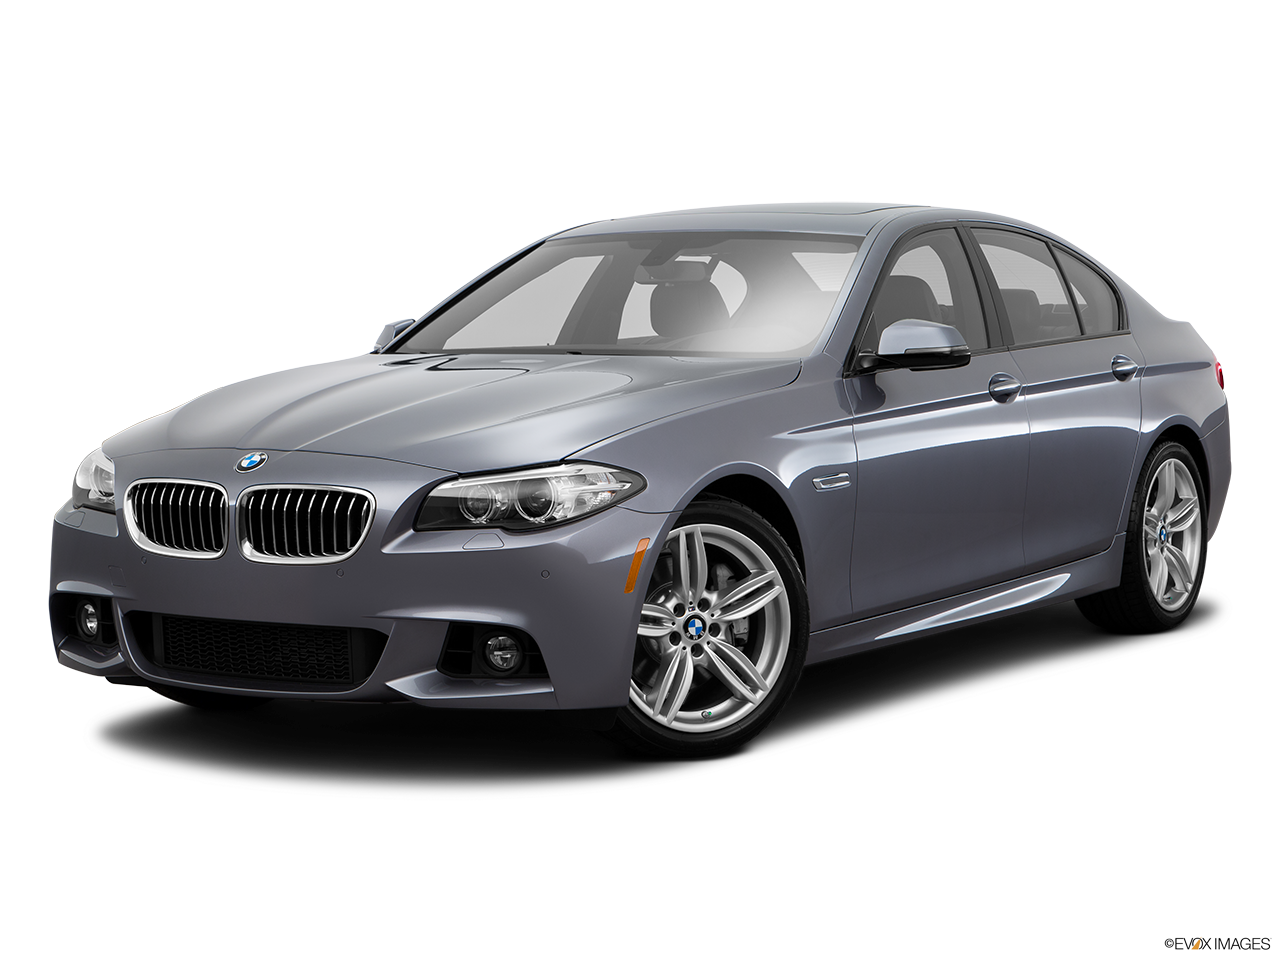 2018 Bmw 4 Series Review >> 2016 BMW 535i Hampton Roads | Casey BMW : Casey BMW